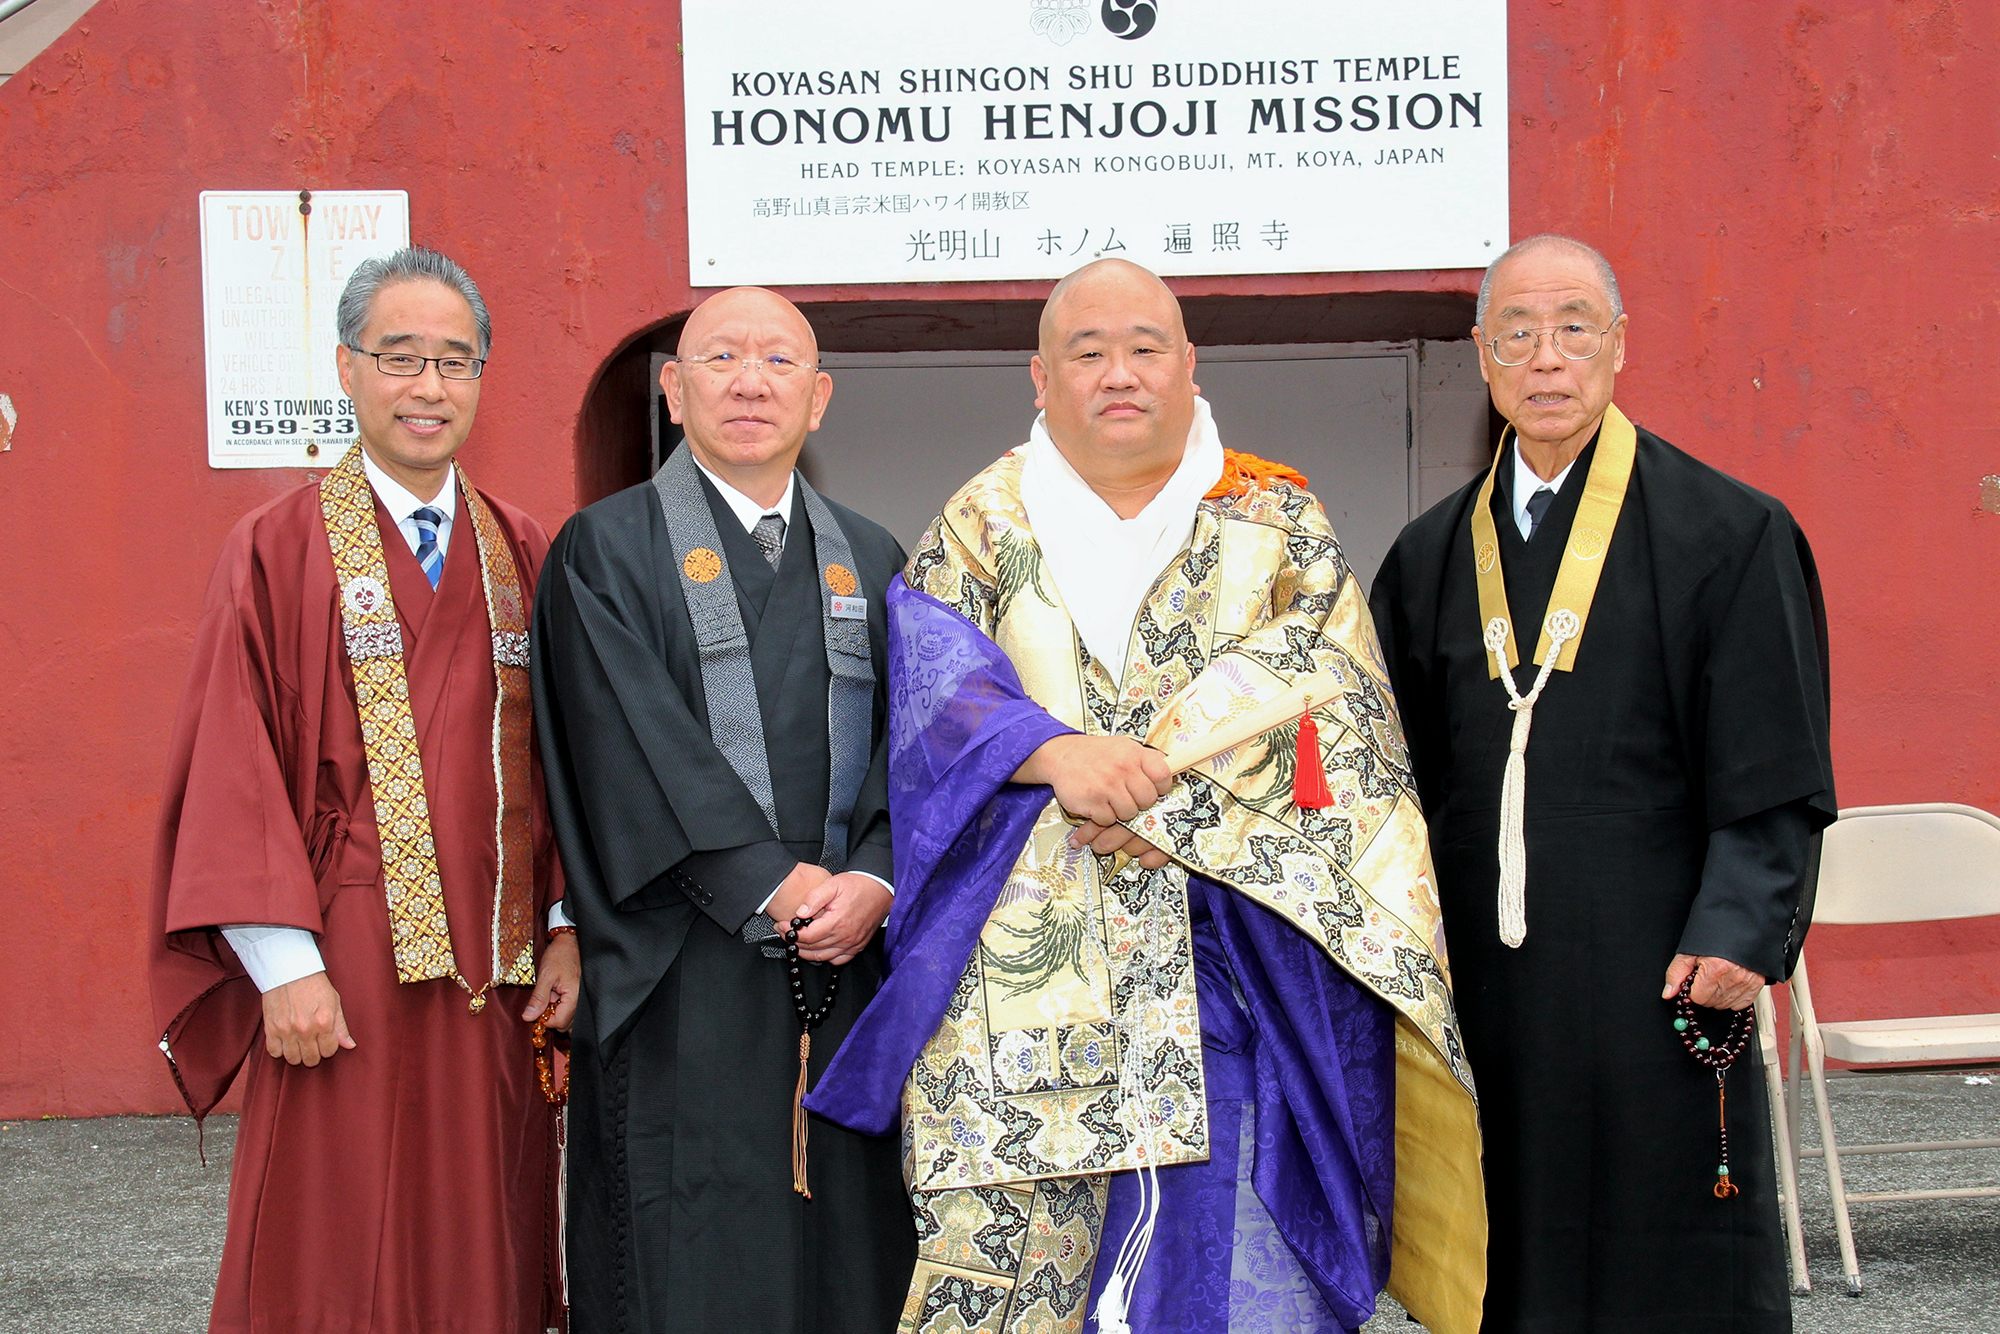 Group photo of (from left) Bishop Eric Matsumoto (Honpa Hongwanji Mission of Hawaii), Bishop Gensho Hara (Jodo Mission of Hawaii), newly installed Bishop Clark Watanabe and Bishop Kenjun Kawawata (Higashi Hongwanji Mission of Hawaii)